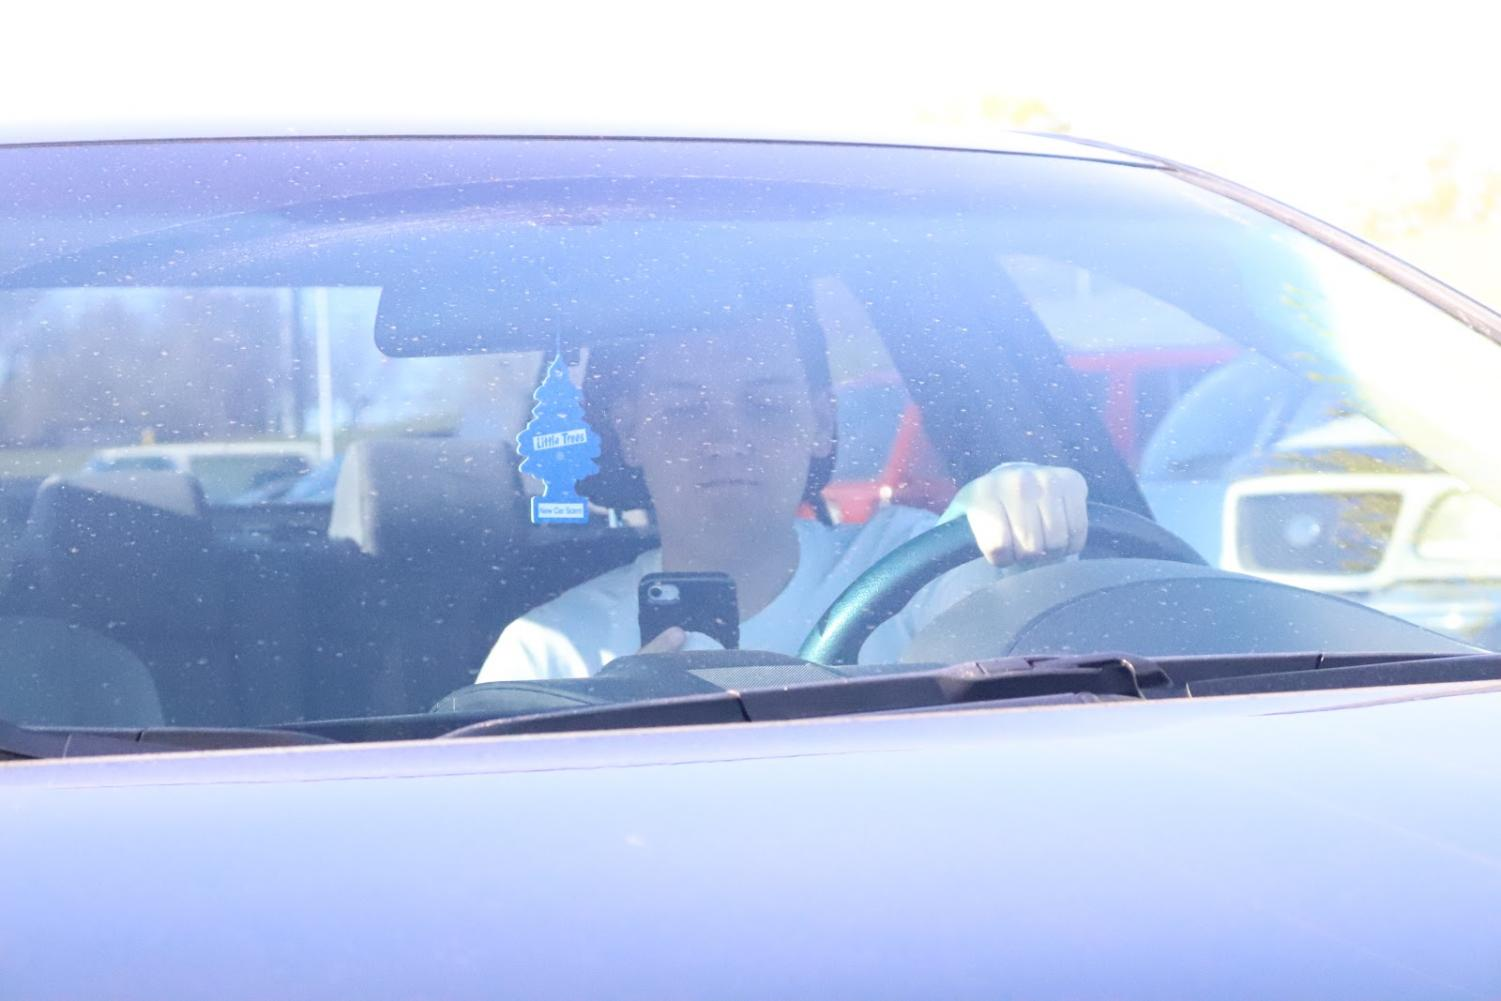 Teenage driver getting distracted by his phone and texting his friends.